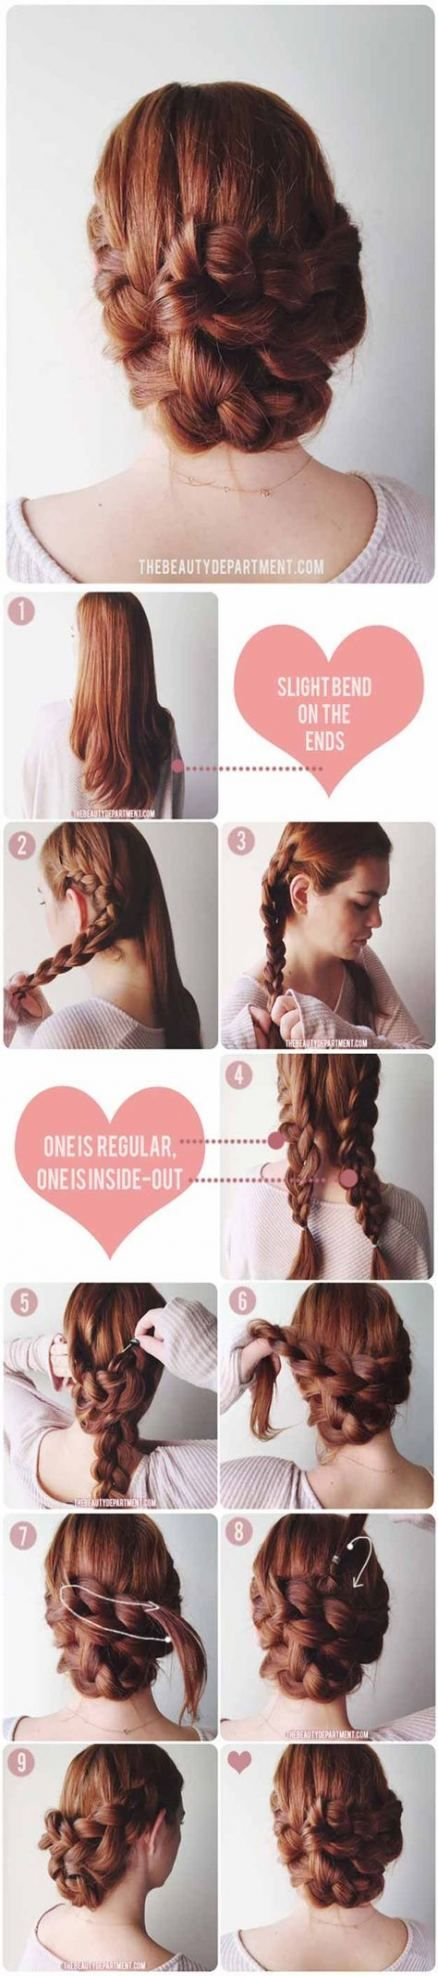 Wedding Hairstyles For Bridesmaids Simple Diy Easy Updo 39 Ideas For 2019